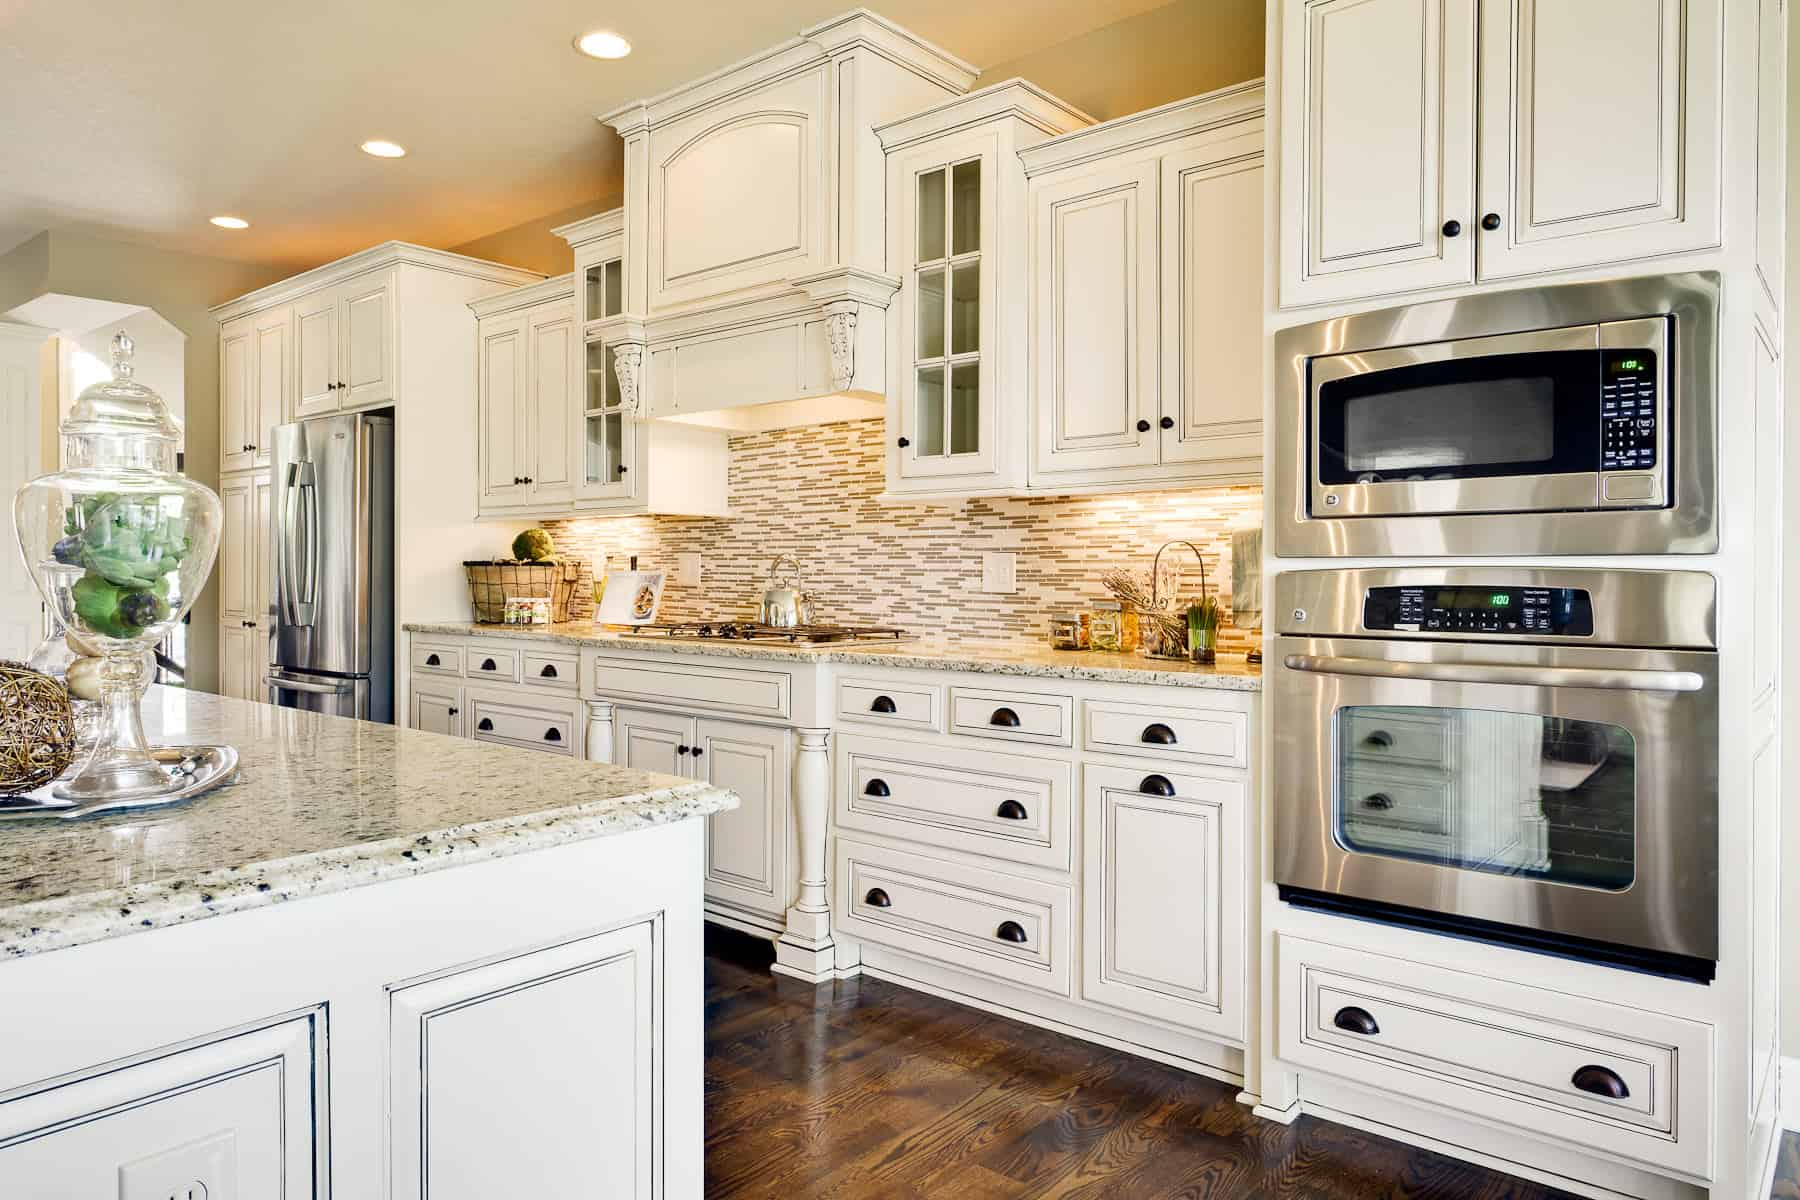 granite countertops cost cost of kitchen countertops Granite Countertops Cost Factors